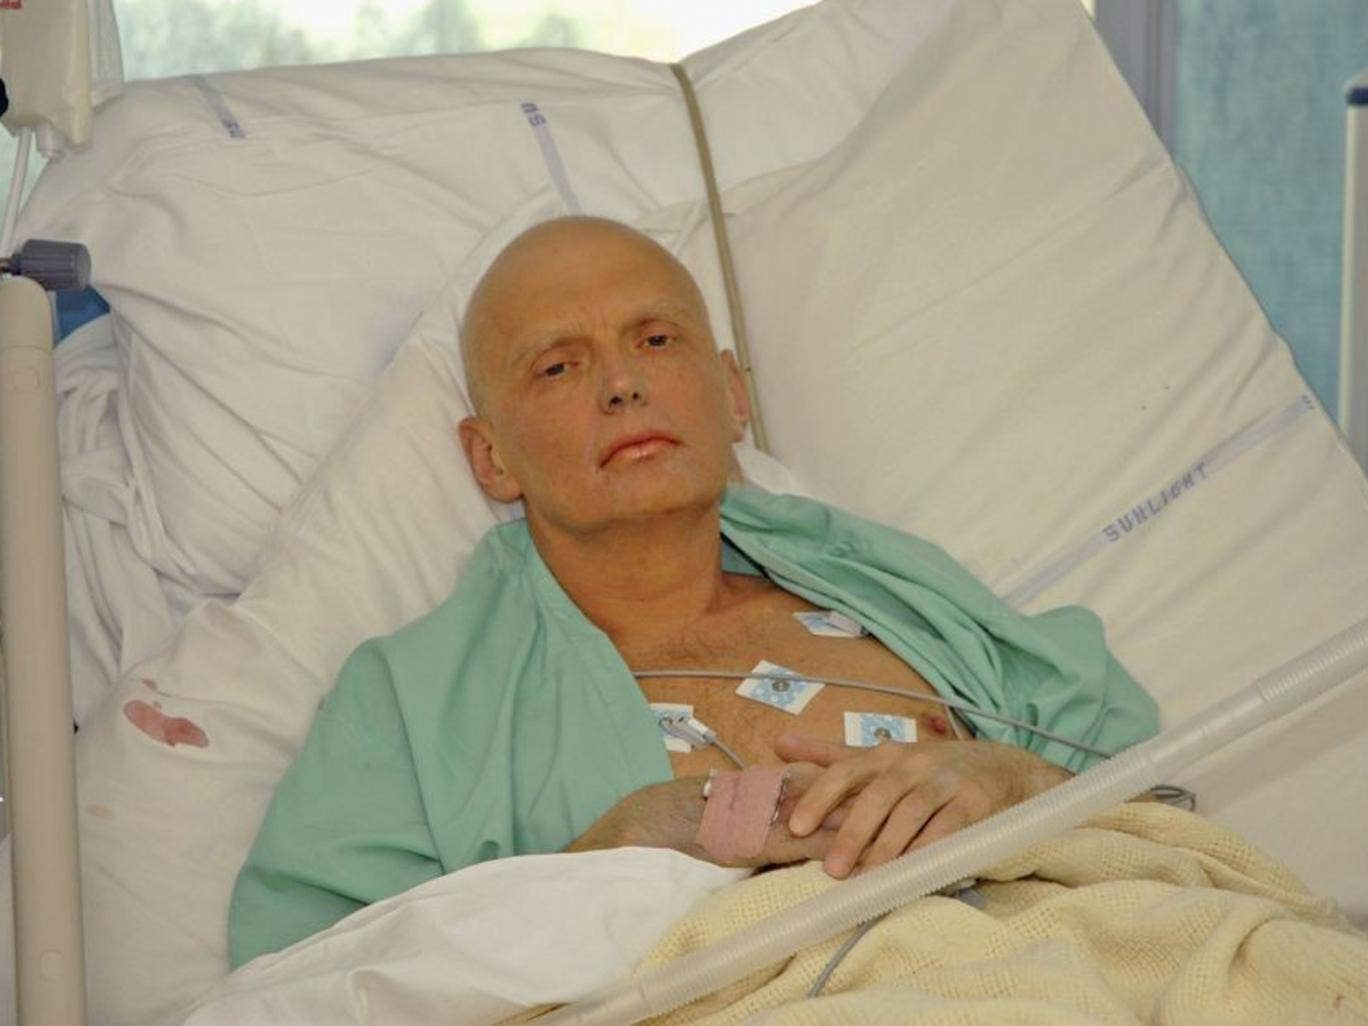 Litvinenko died in November 2006 after he was poisoned with polonium-210 while drinking tea at a meeting